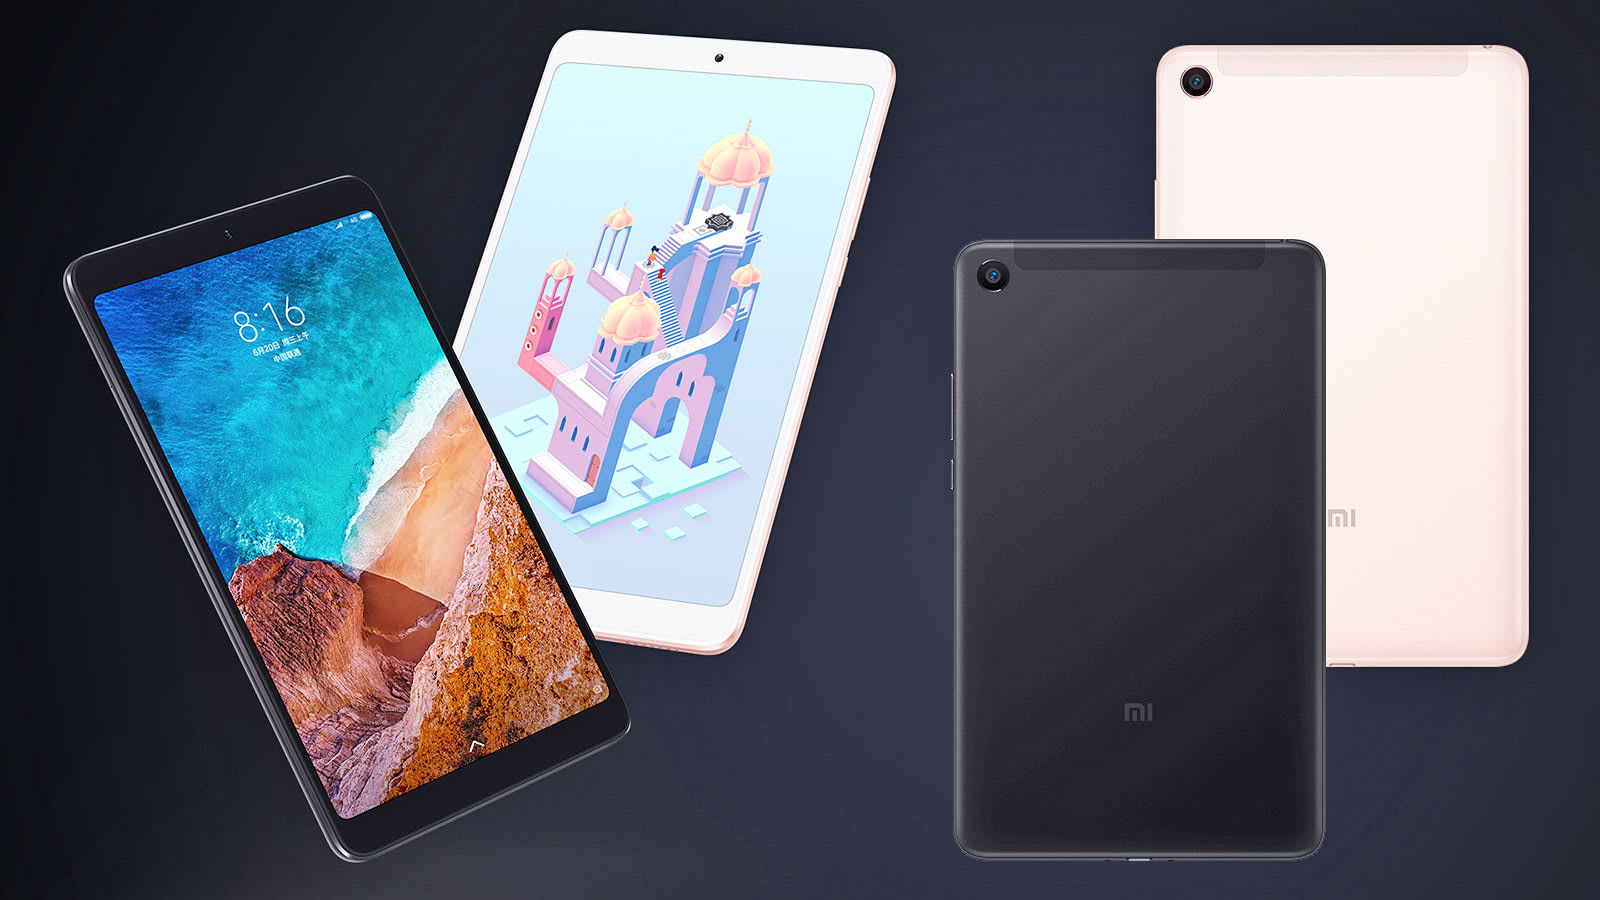 Xiaomis Latest Tablet Offers Lte On The Cheap Xiaomi Redmi Note 4 64 Gbfull Black